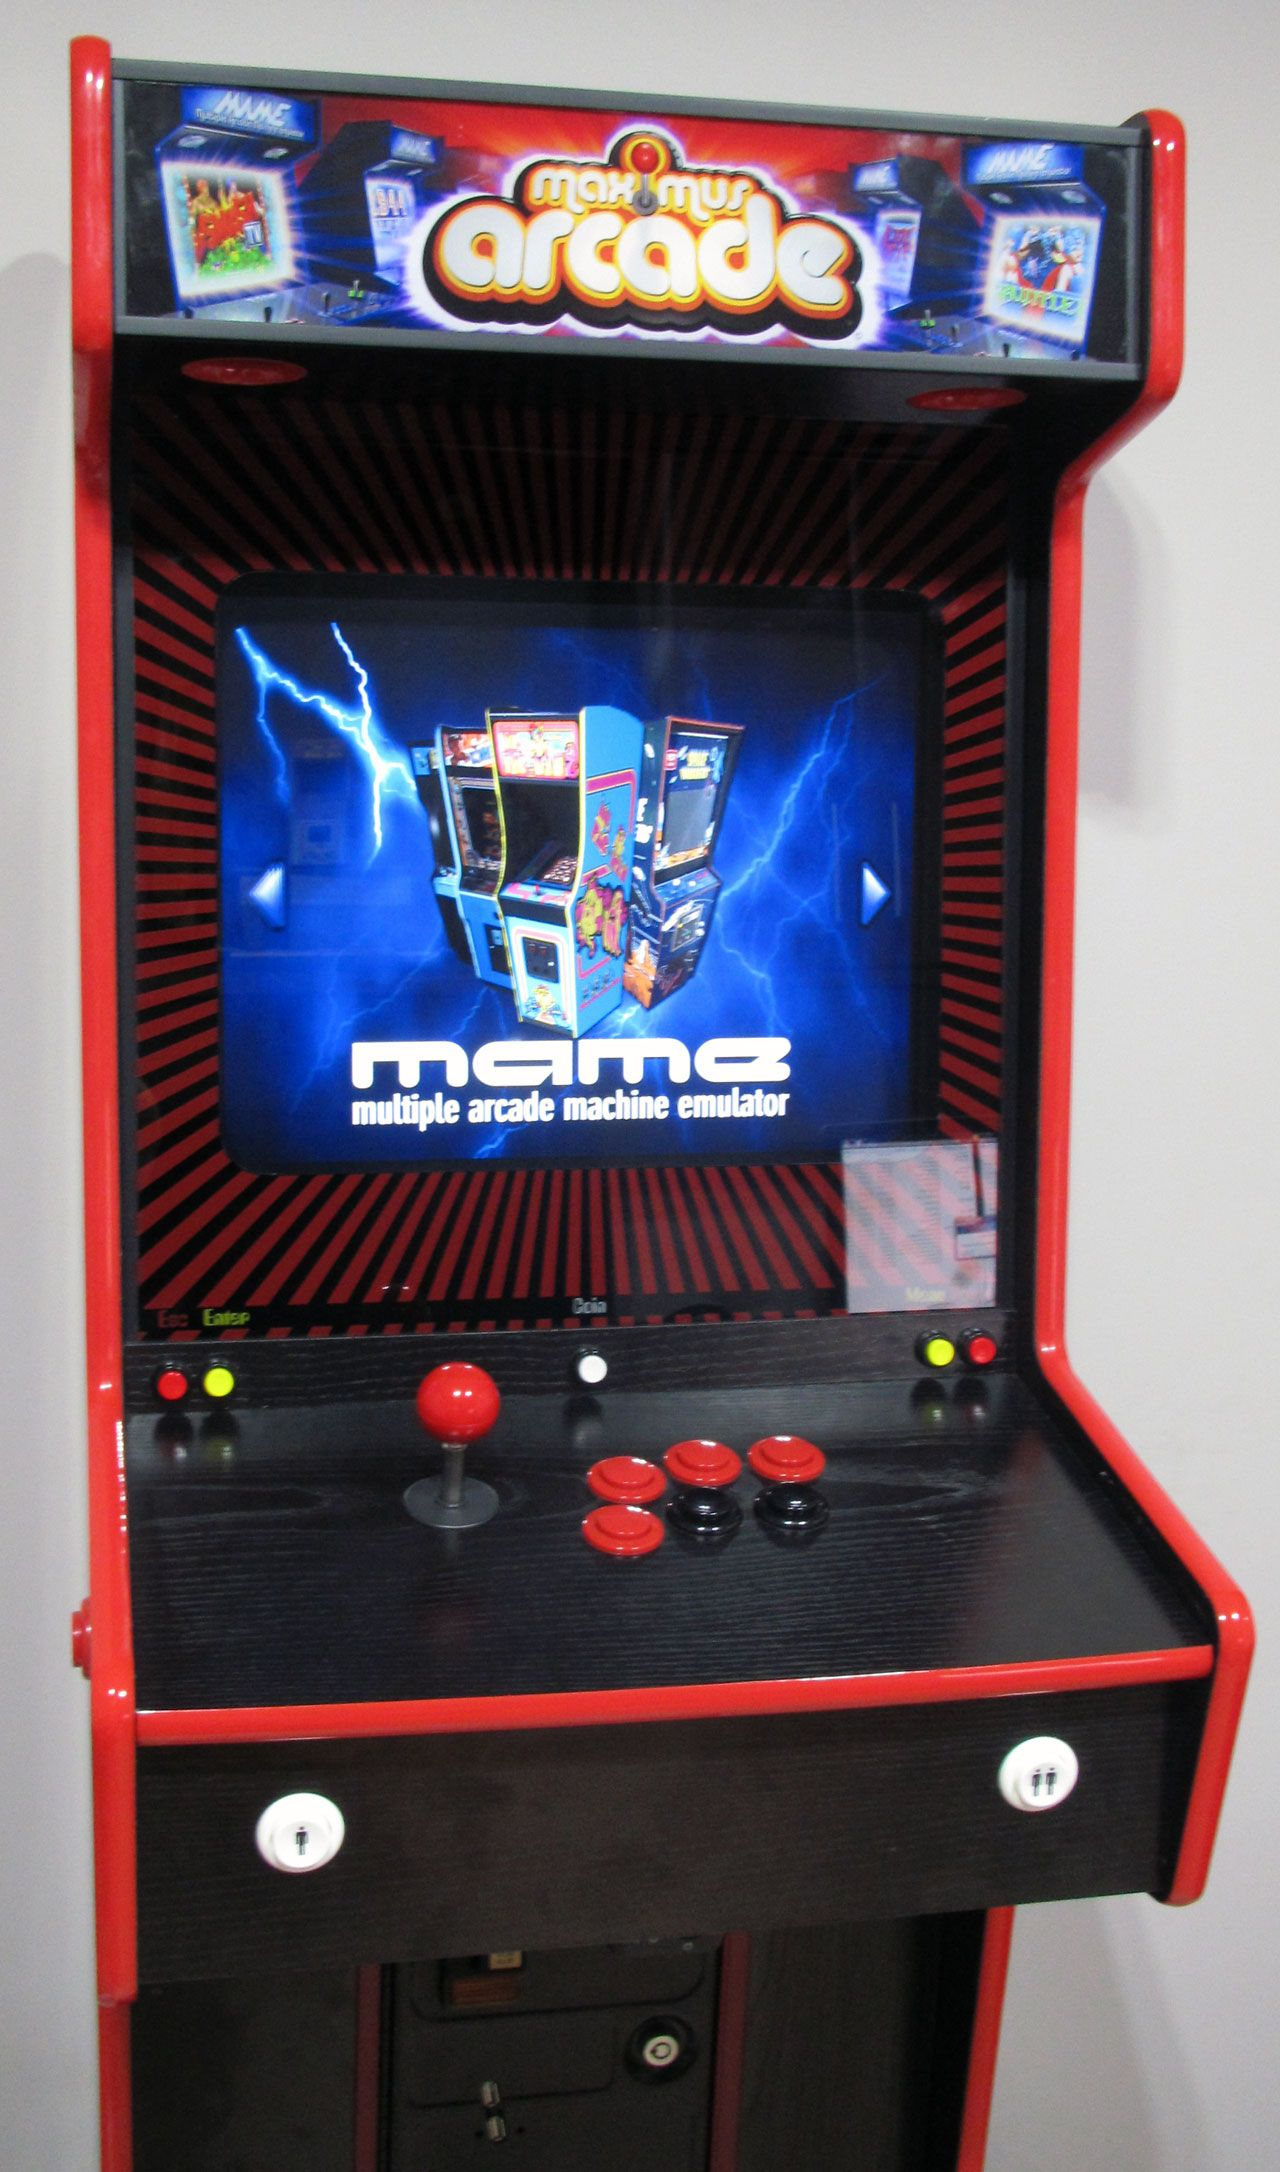 MY ULTRA SLIM PROJECT - MULTICADE | Arcade, Projects, Arcade machine